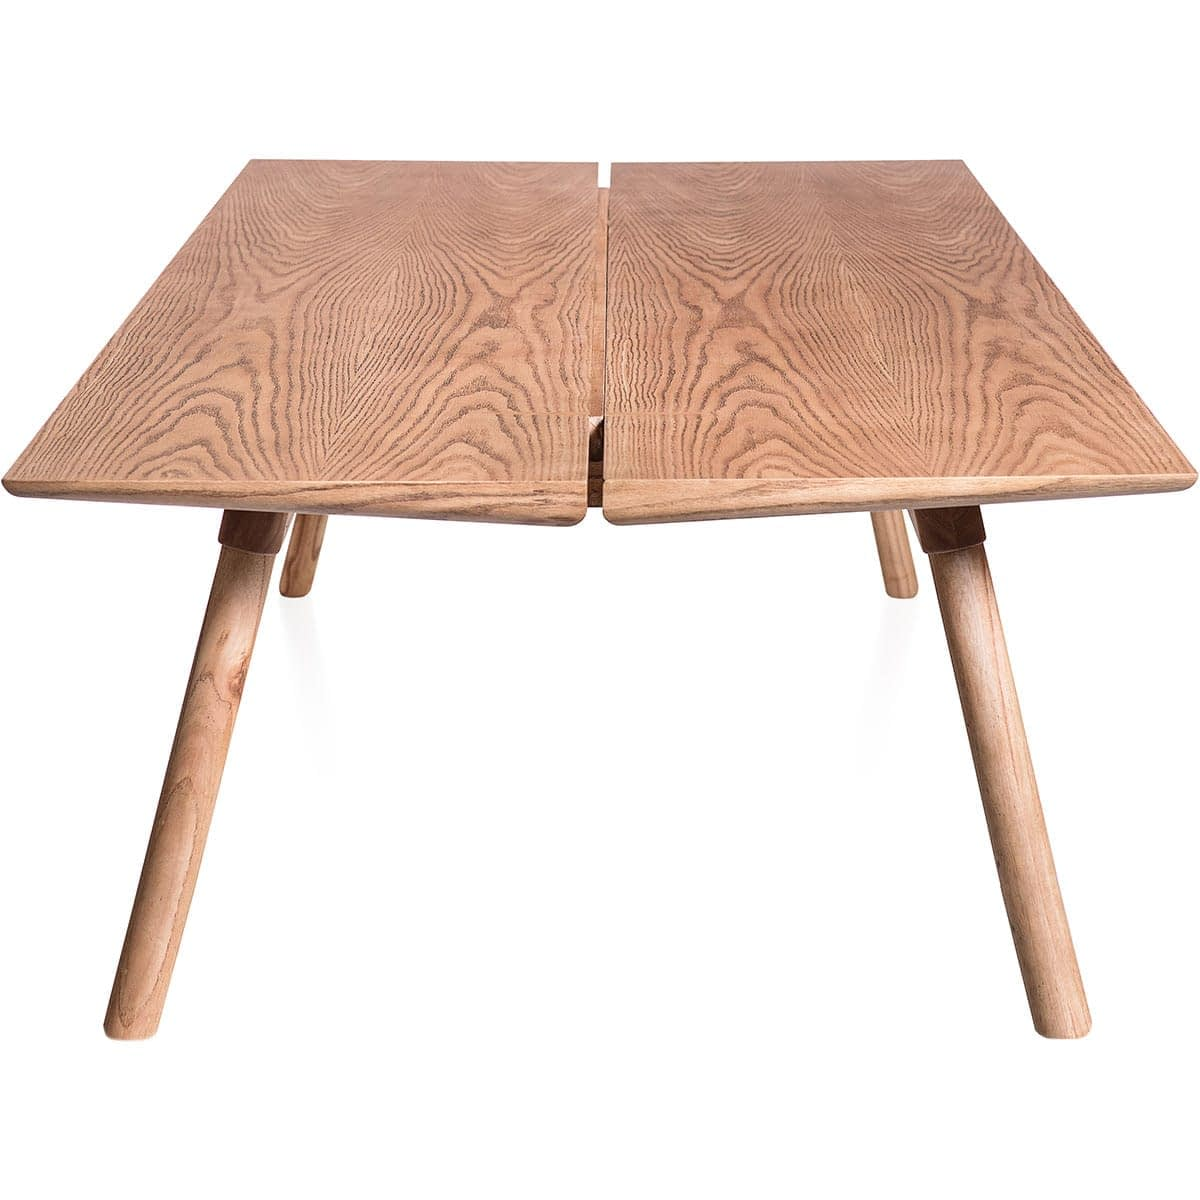 Designers Plataforma4 Design Falesia Dining table